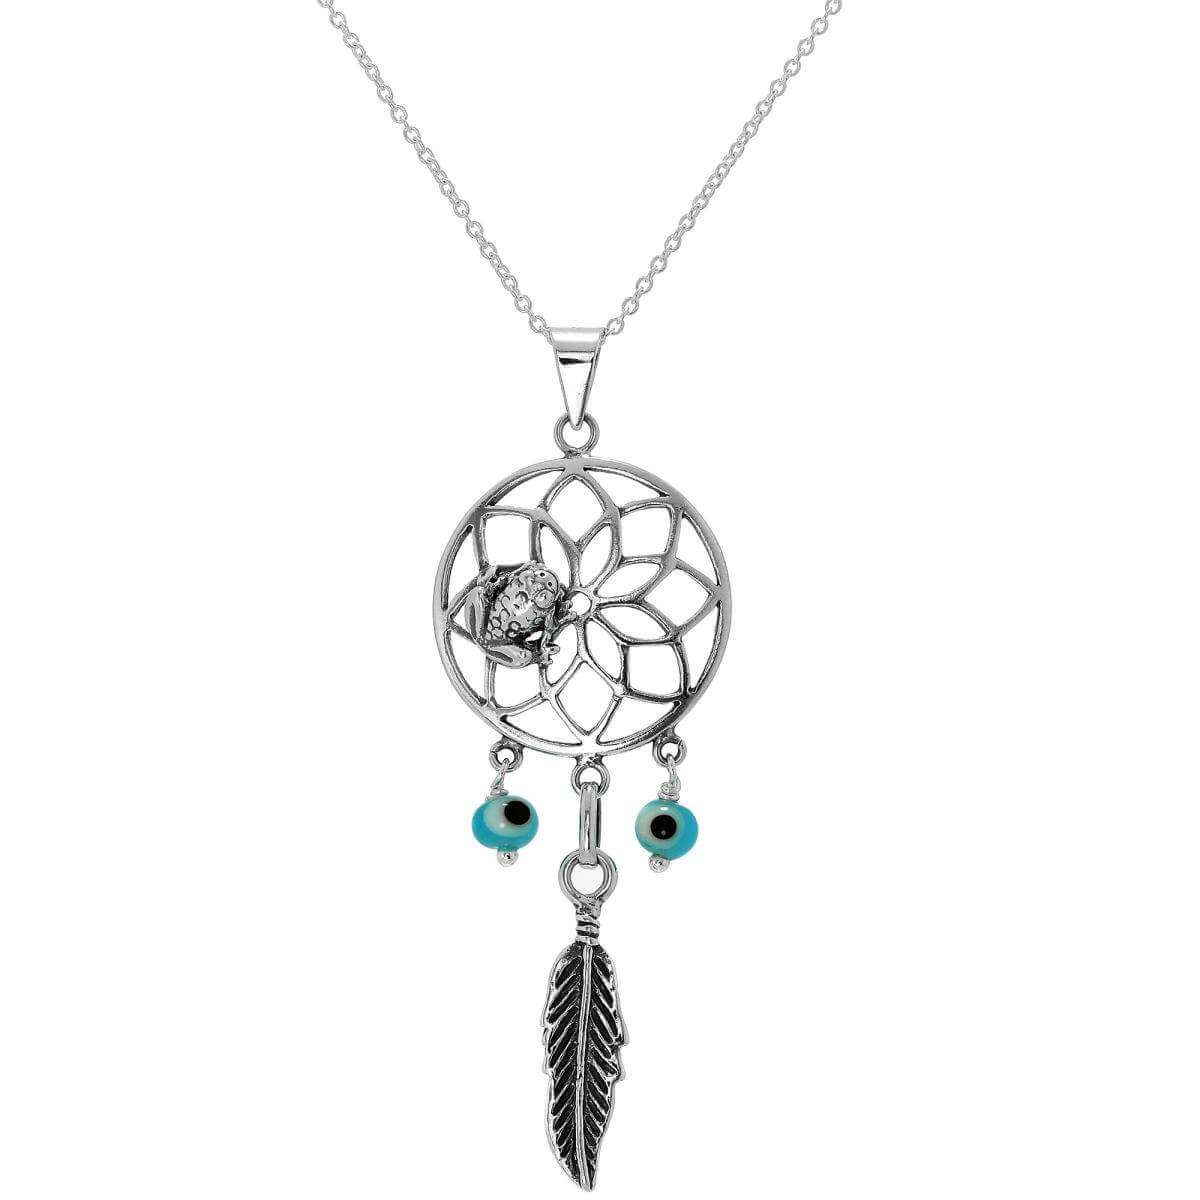 Large Sterling Silver Dreamcatcher Necklace On Chain